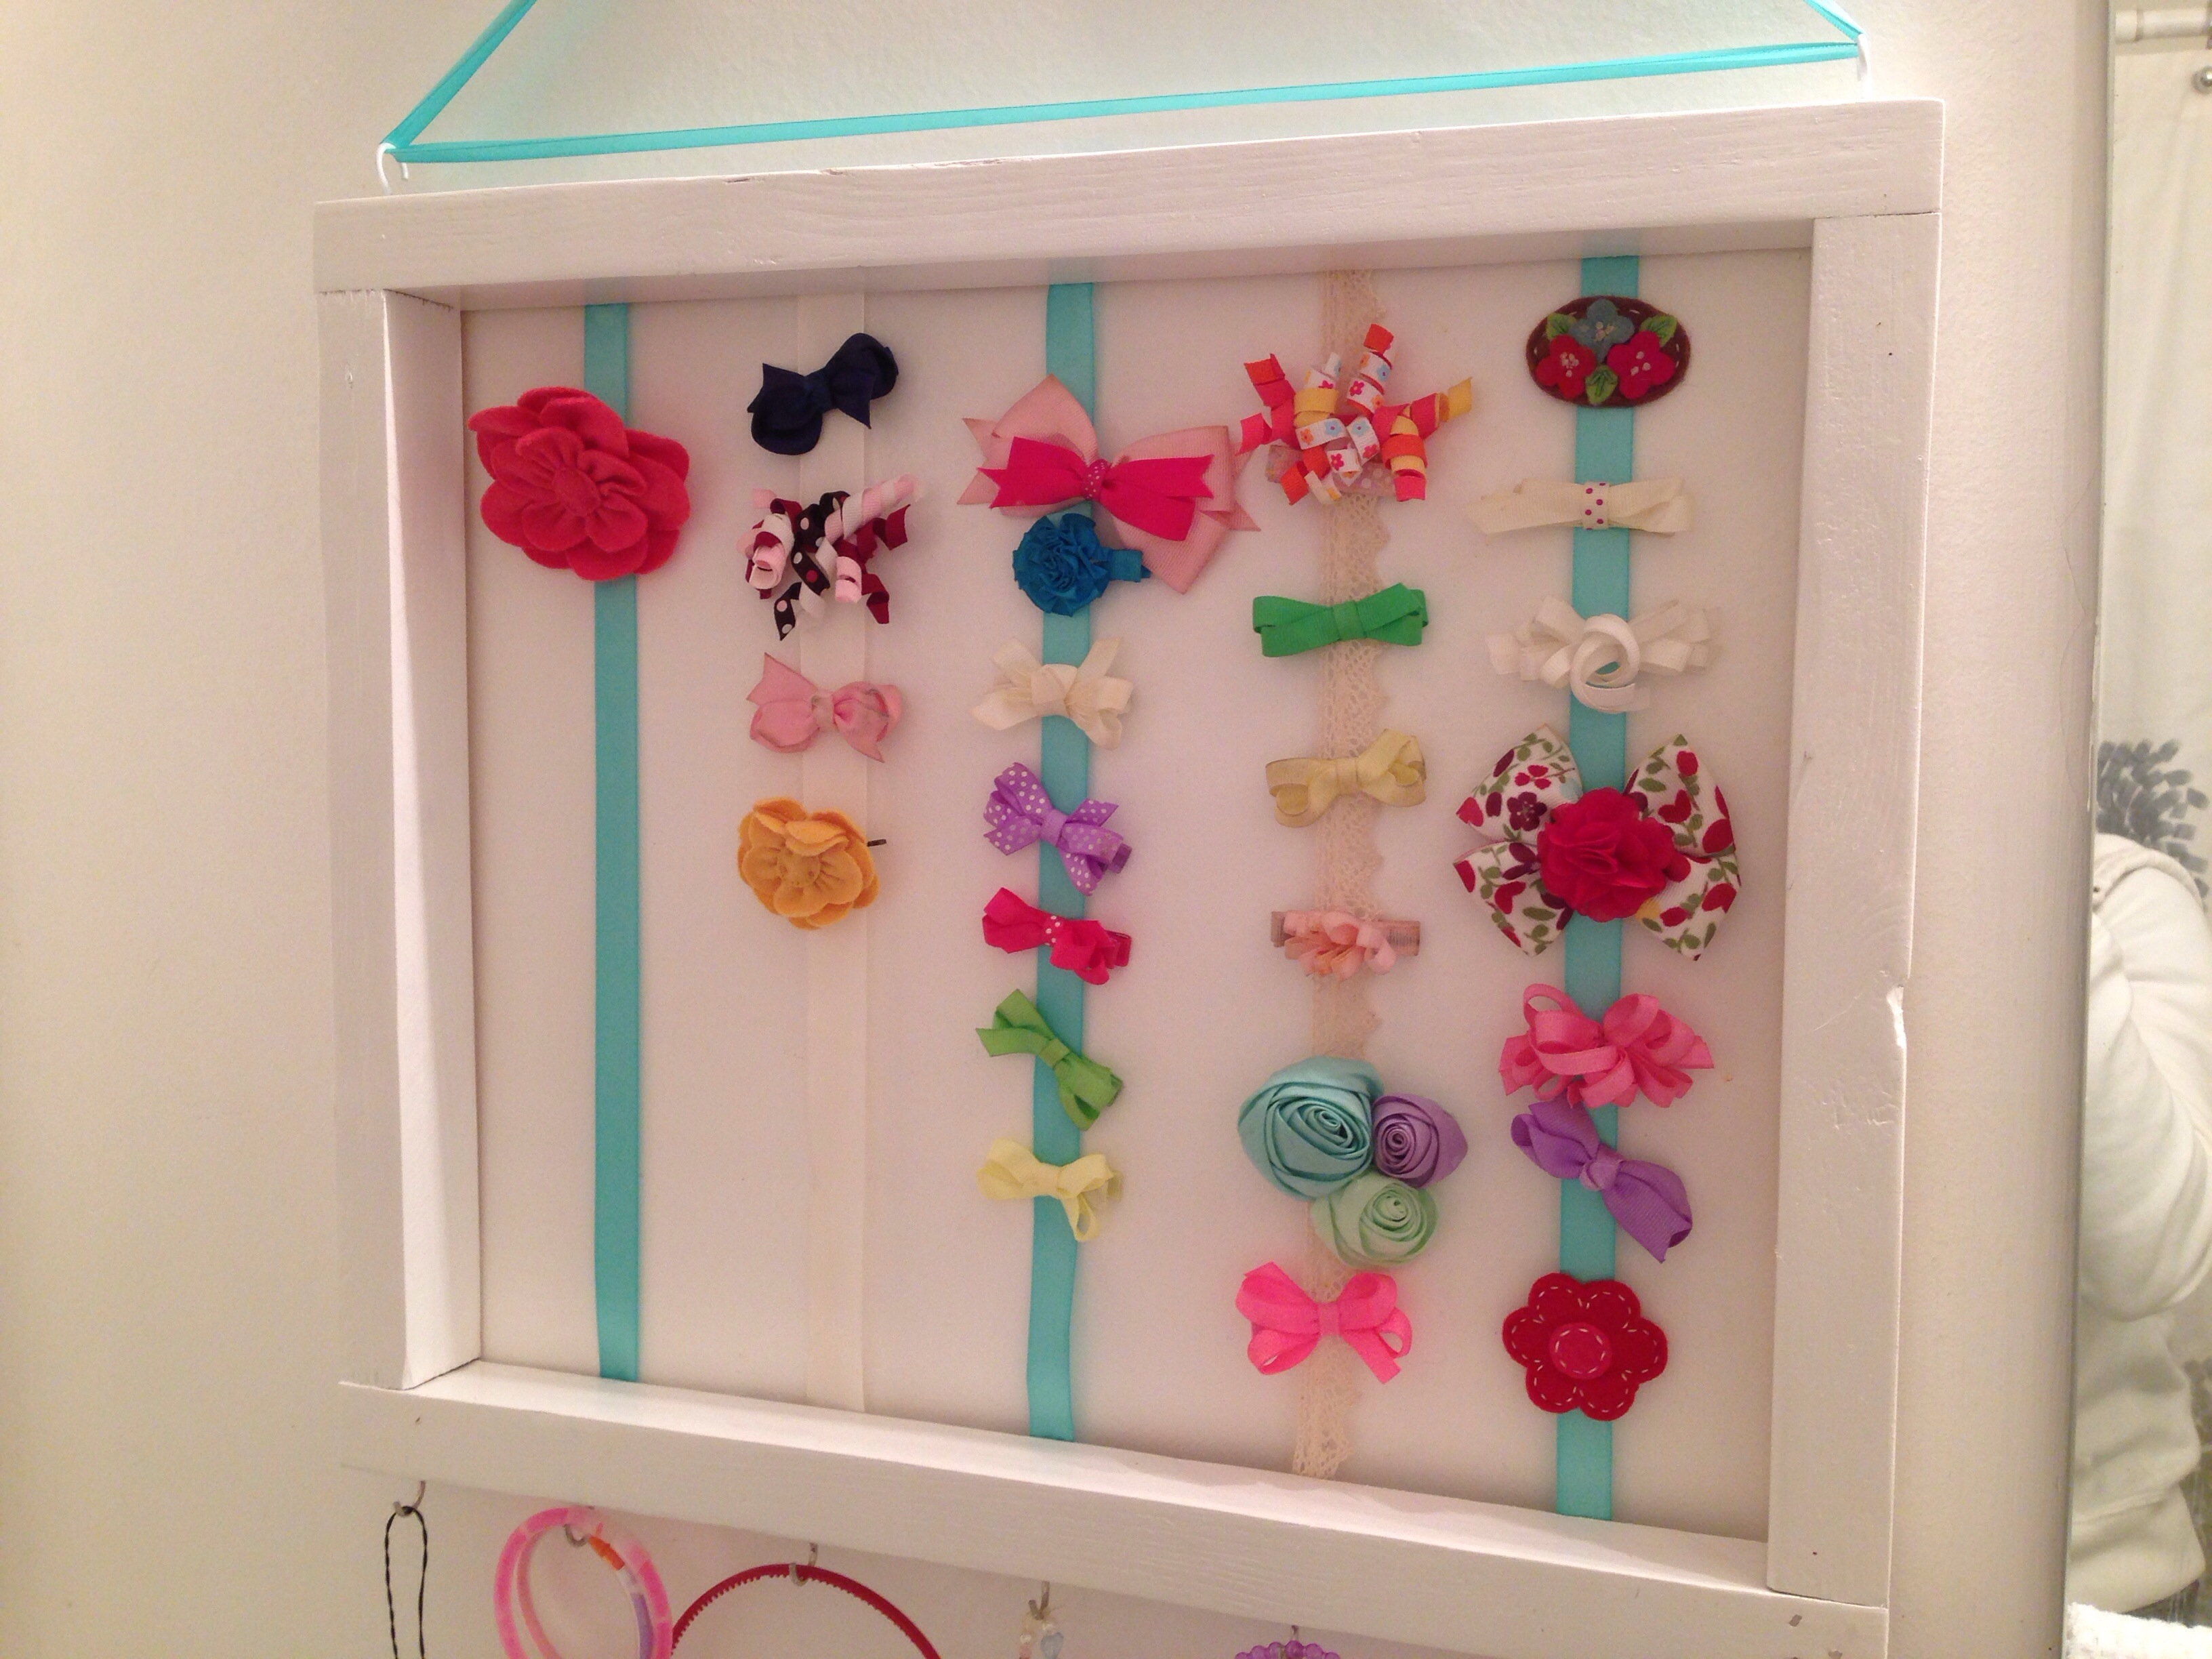 How to organize hair bows - I Must Have Cabin Fever Or Maybe It S Just The Post Holiday Crush Because I Ve Been On An Organizing Spree Again I Have An Ongoing List In Evernote Of